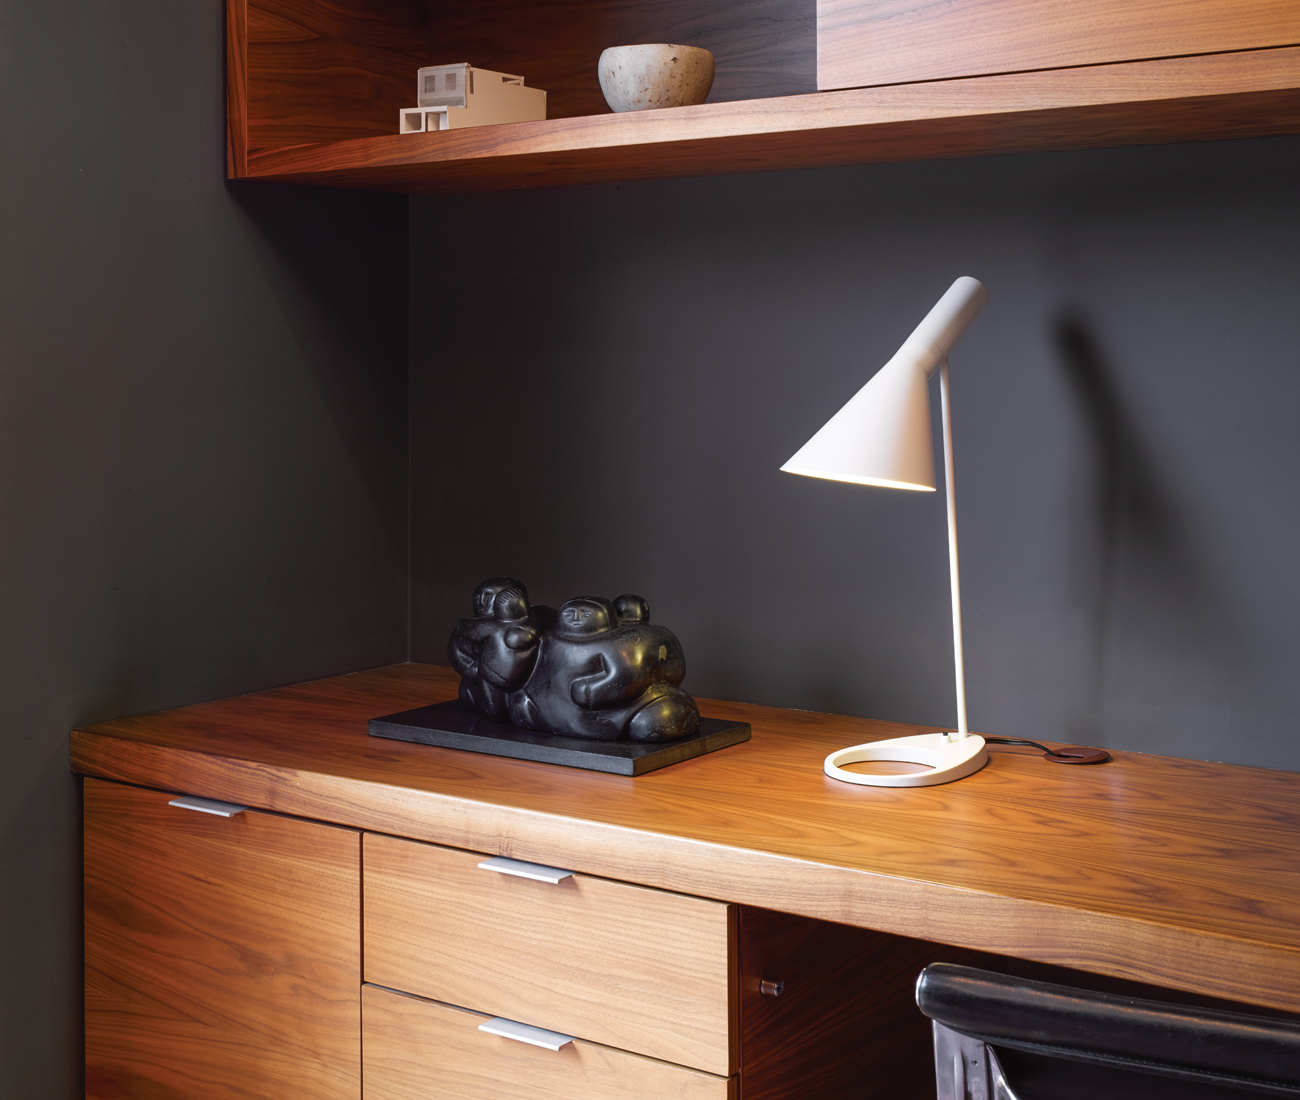 A Home Office With Back-to-Back Bureaus